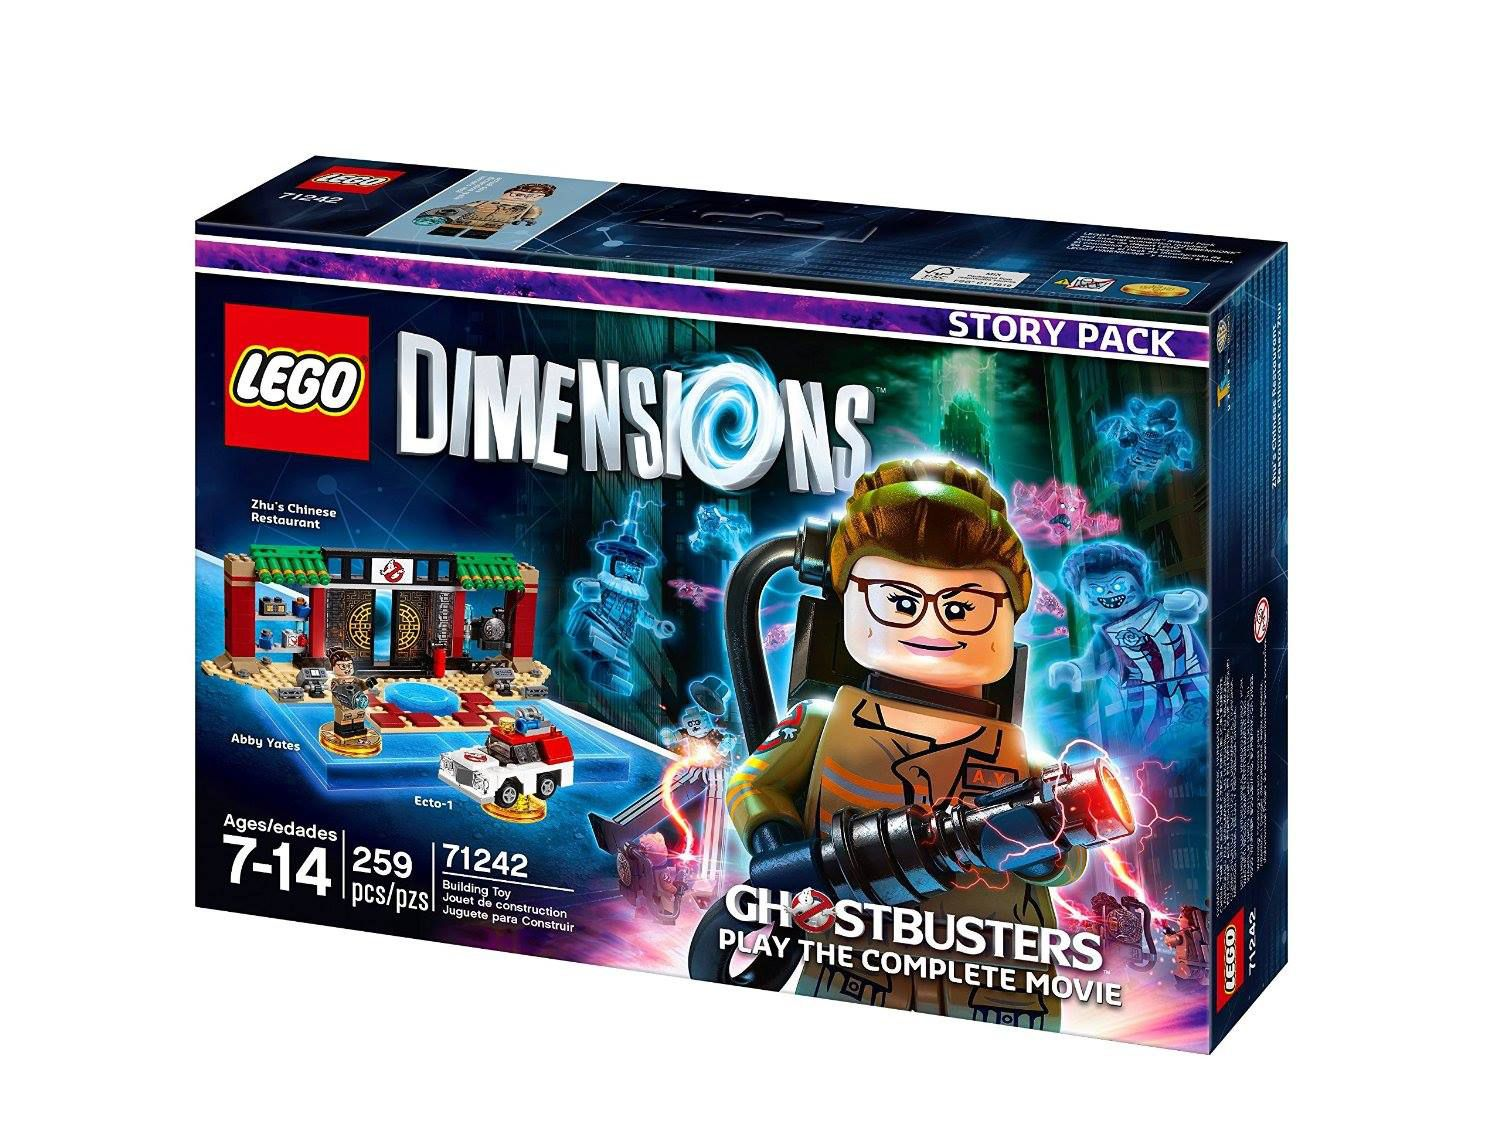 LEGO Dimensions 71242 Story Pack New Ghostbusters LEGO_DIMENSIONS_71242_Ghostbusters-Story_Pack-04.jpg